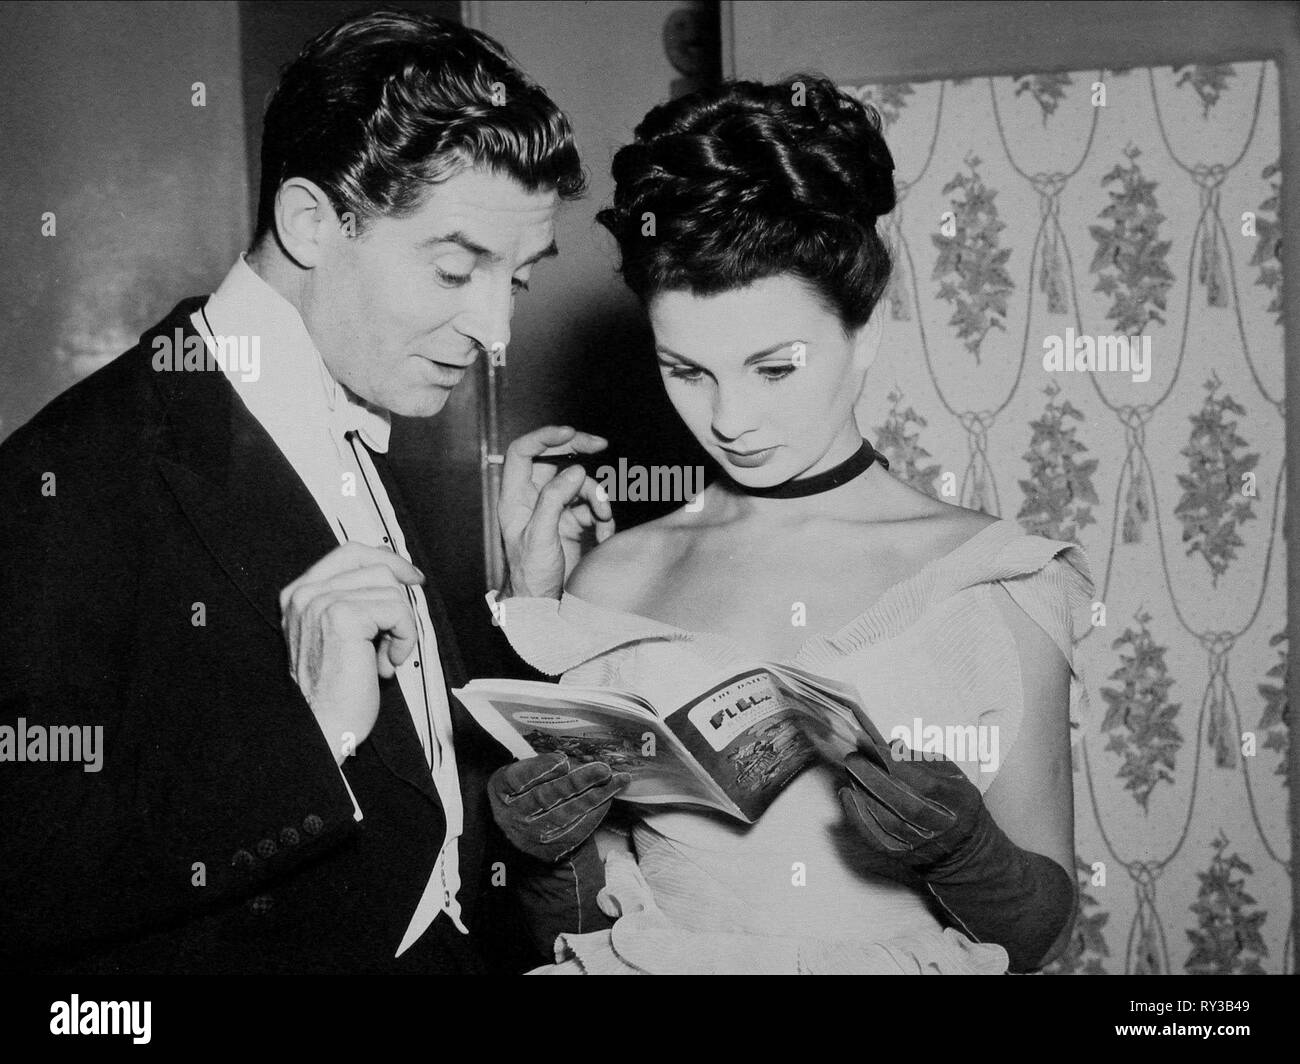 MARNEY,SIMMONS, UNCLE SILAS, 1947 - Stock Image